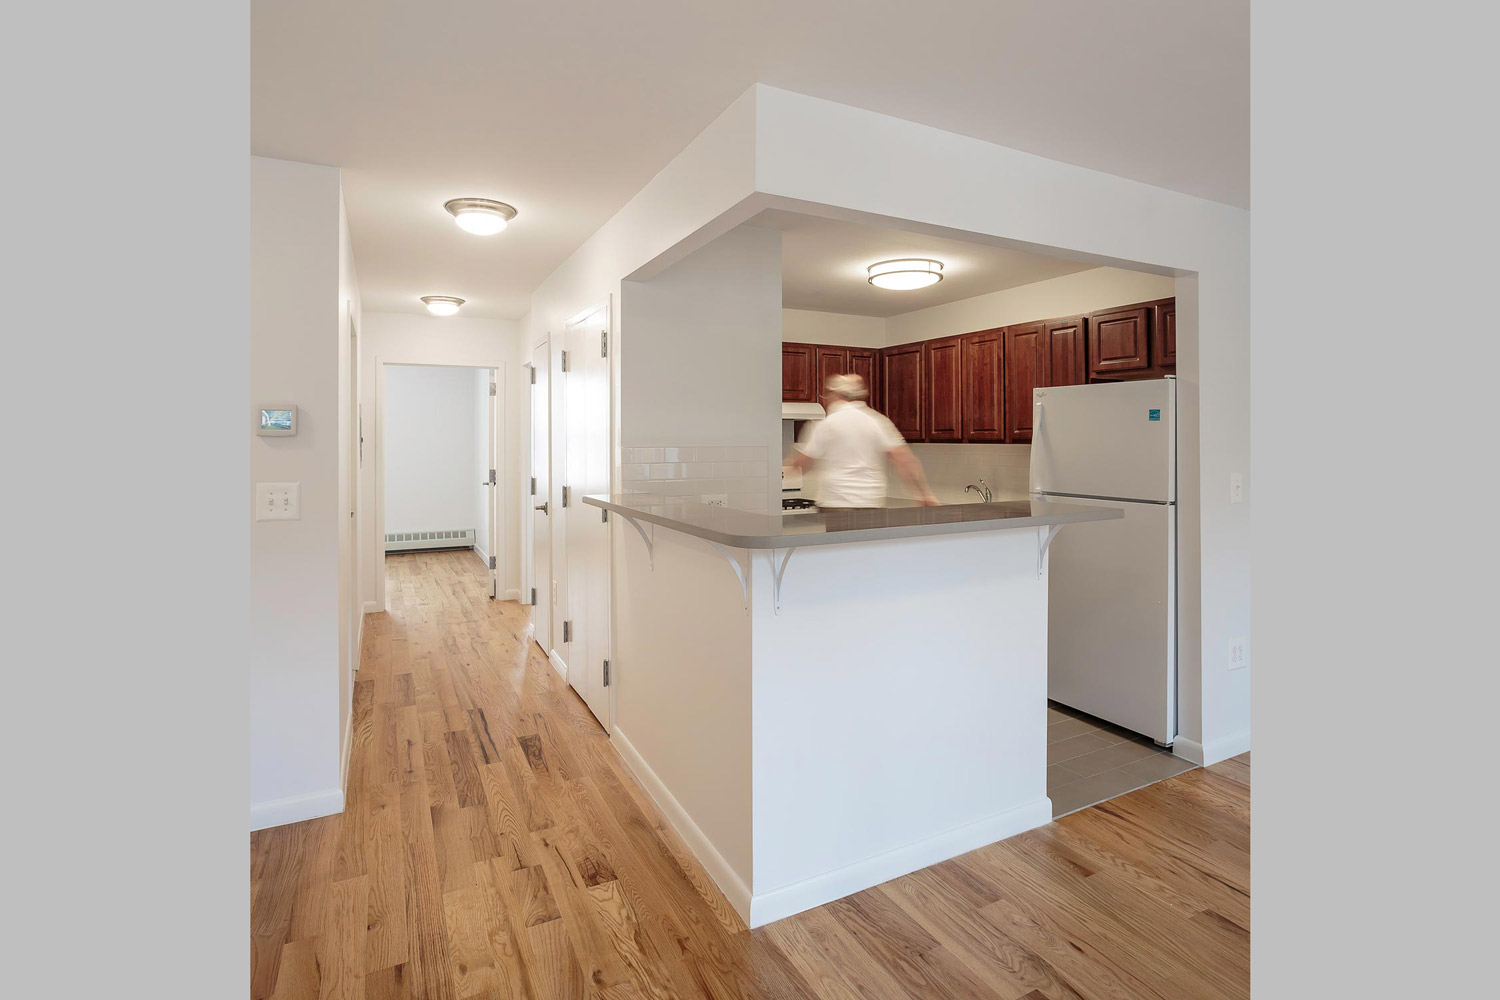 Sustainable features at these green, affordable condos include energy efficient lighting, fixtures and appliances.